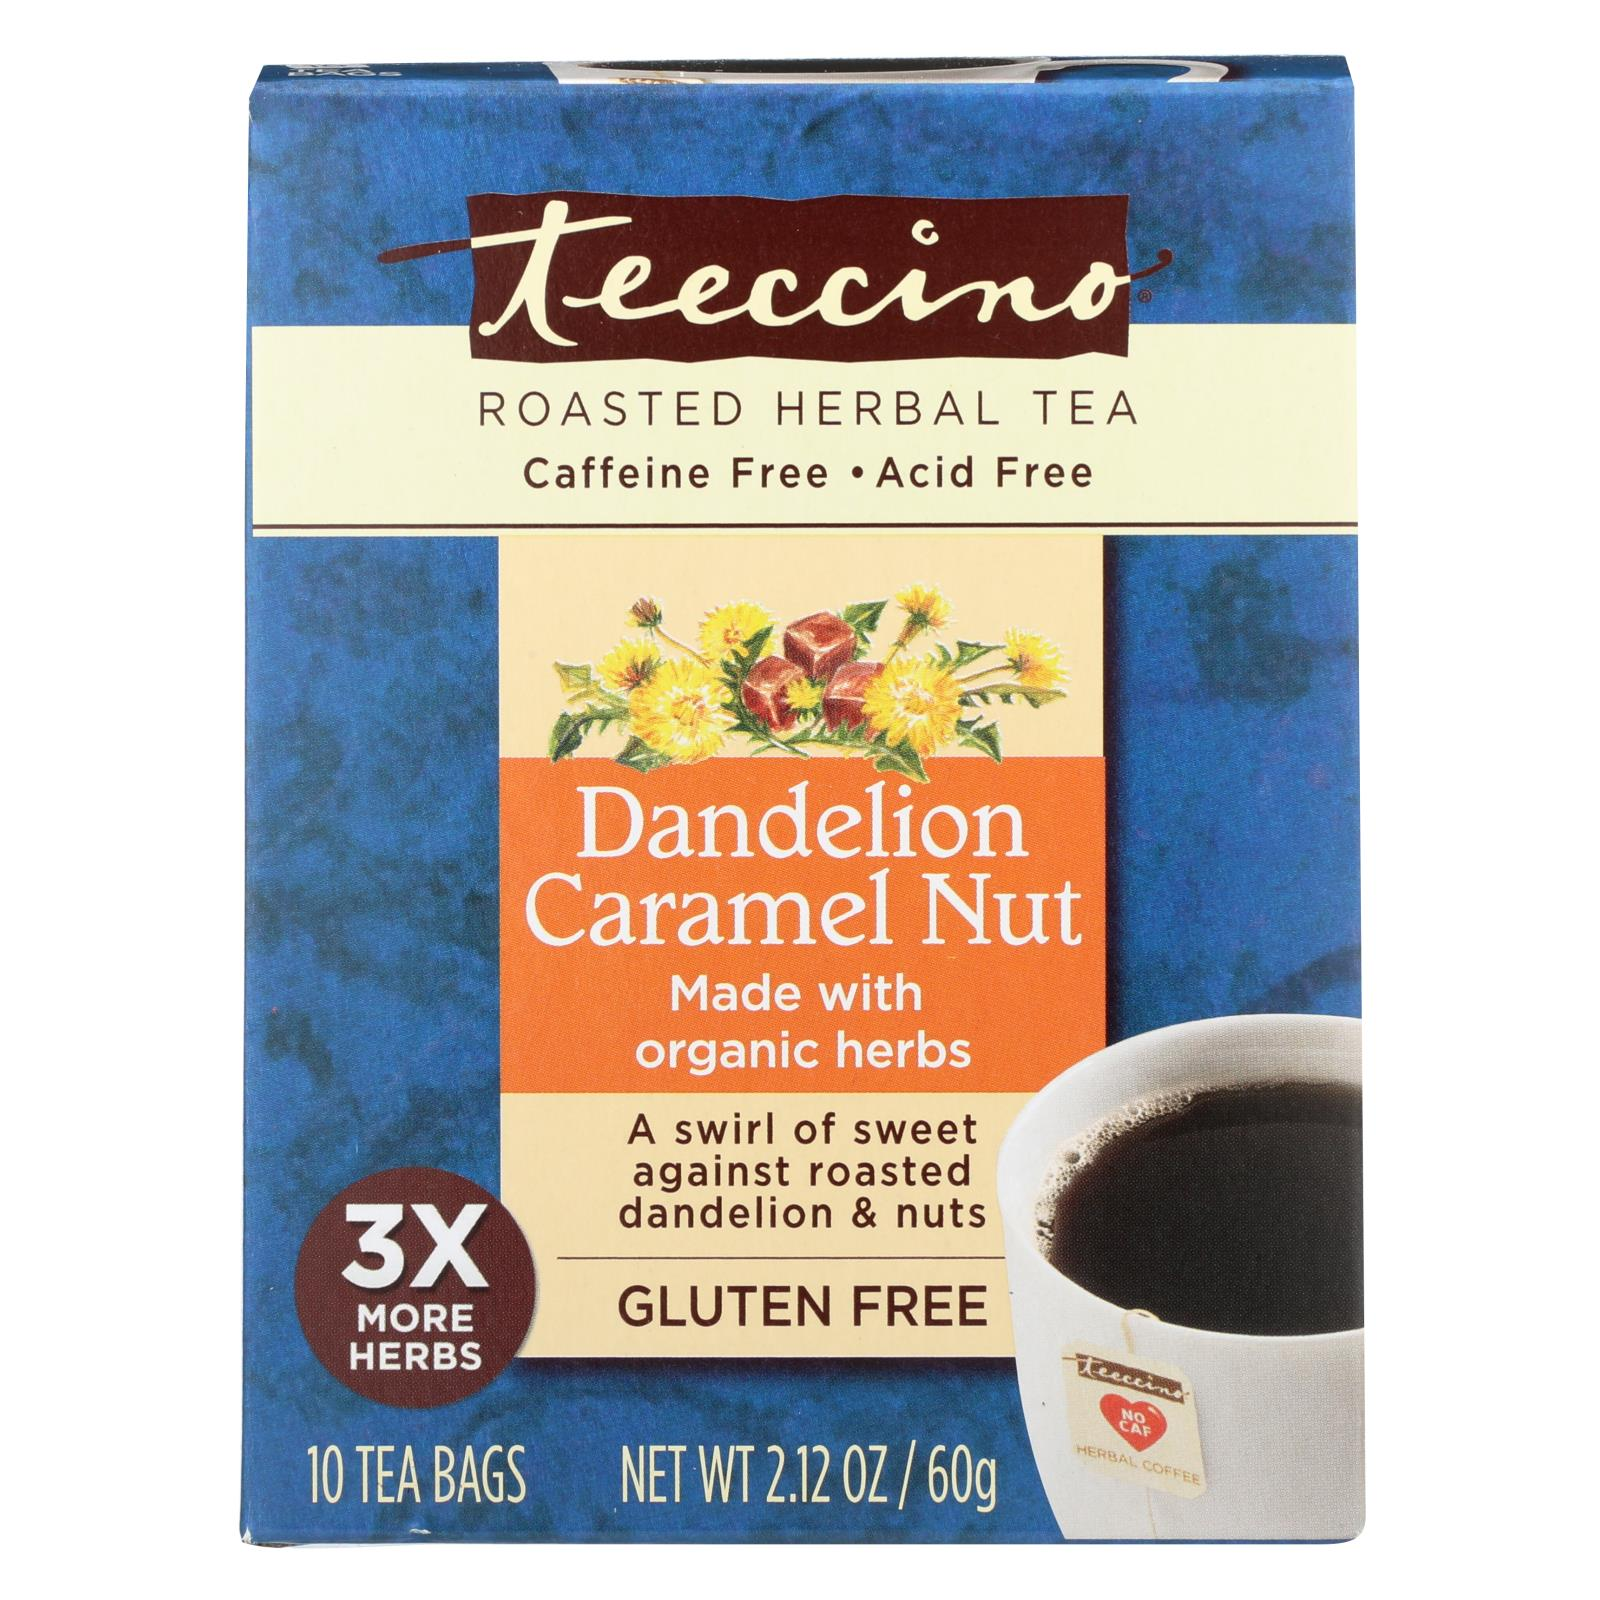 Buy Teeccino Coffee Tee Bags - Organic - Dandelion Caramel Nut Herbal - 10 Bags - Beverages from Veroeco.com